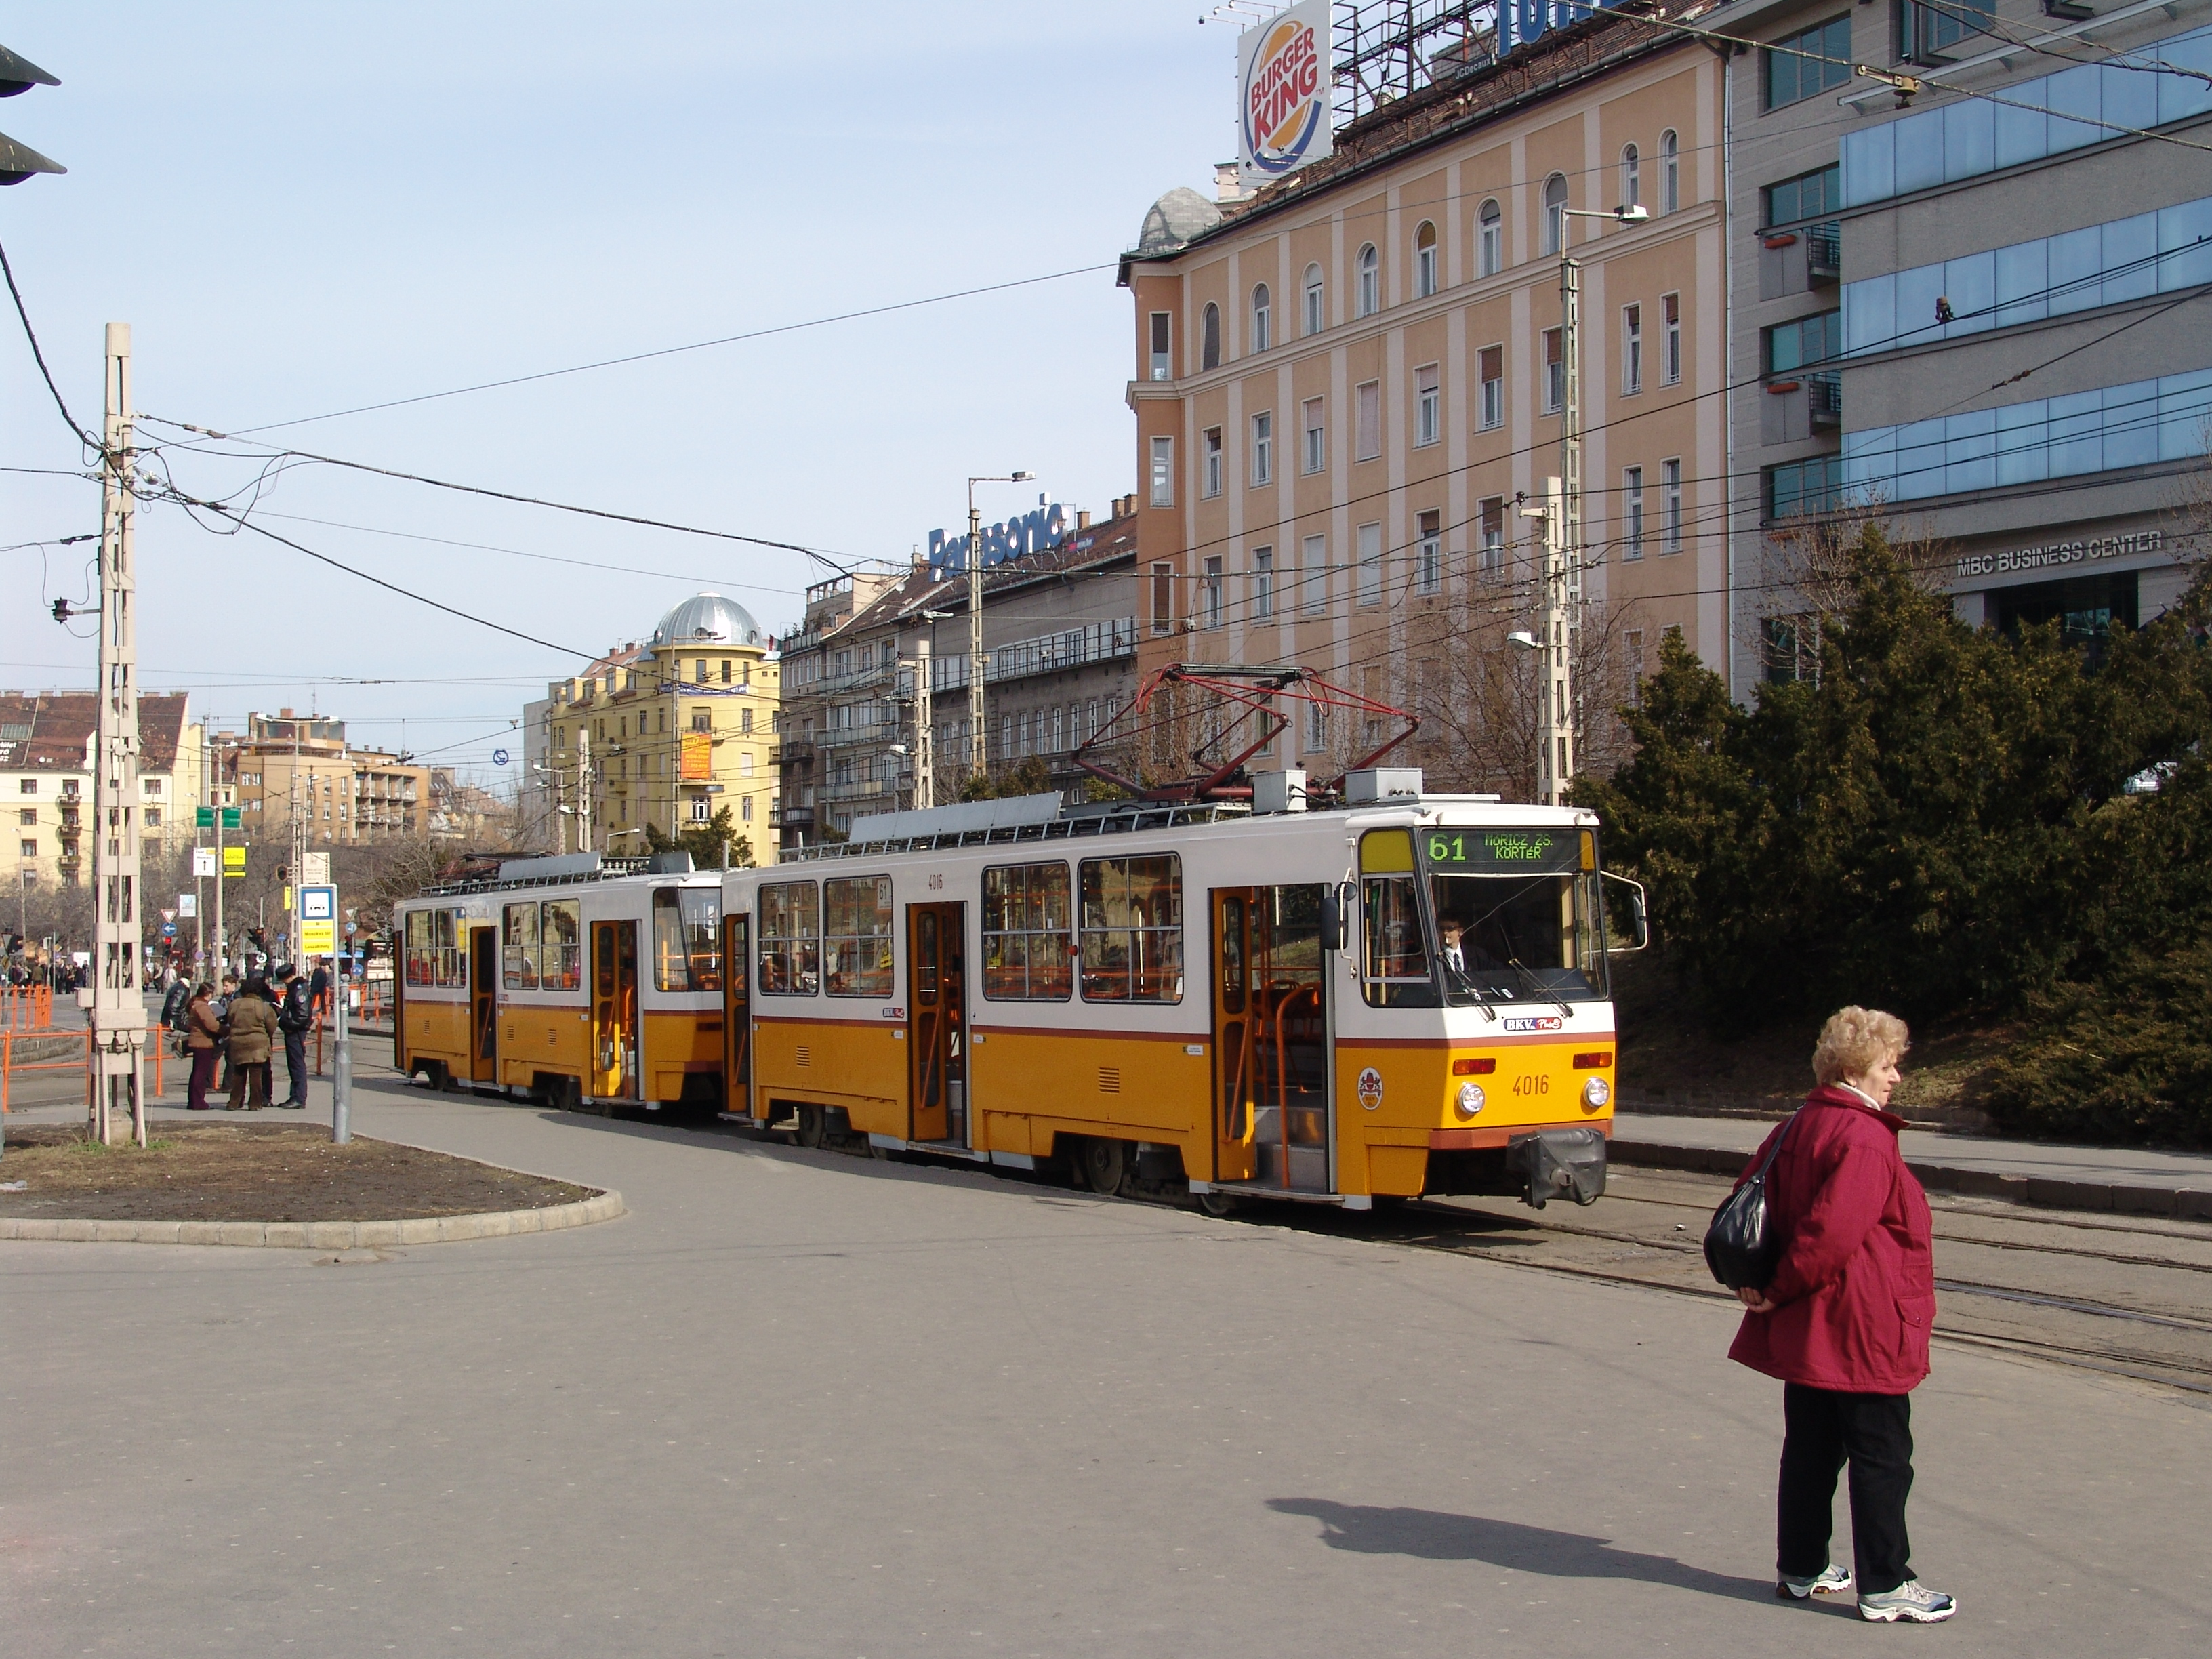 File:Budapest yellow tatra tram.jpg - Wikimedia Commons